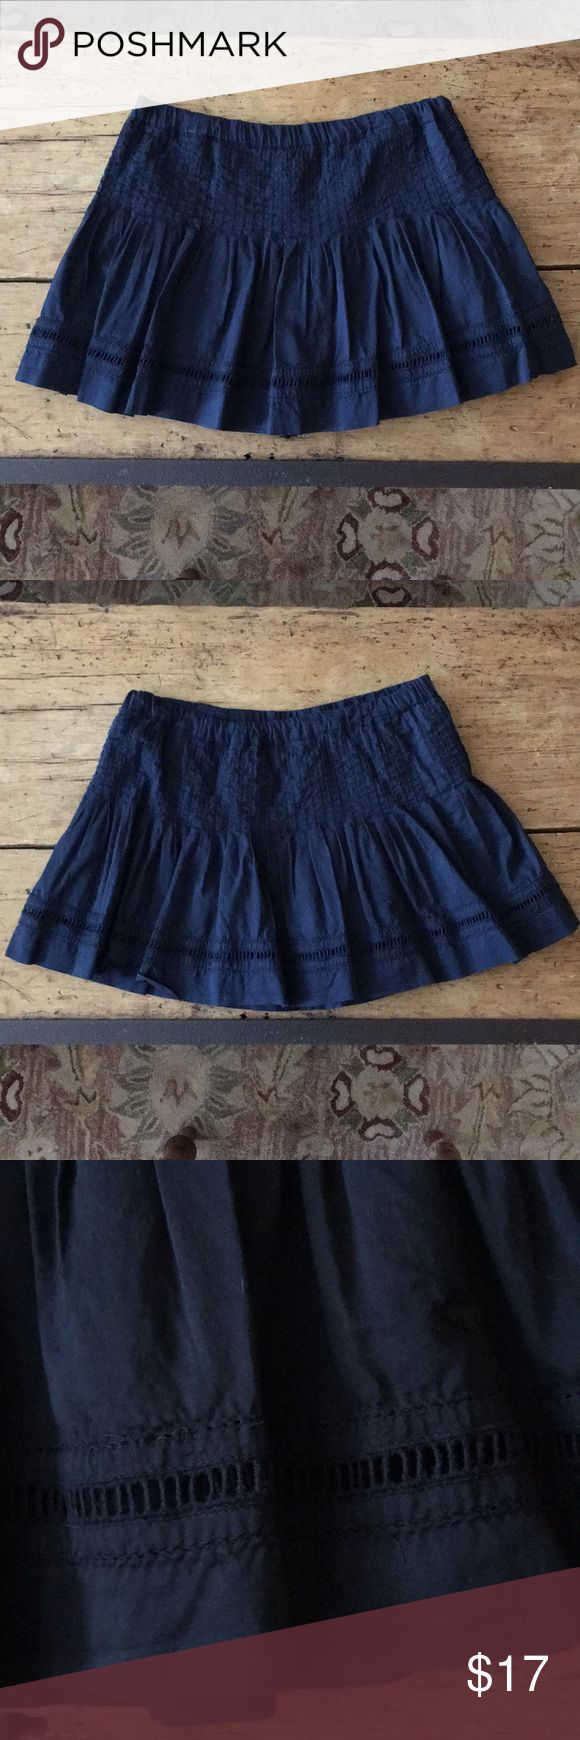 Very Cute Abercrombie Navy Skirt. Very cute mini skirt that fits really nicely around the hips because of all of the pleating and flairs at the bottom. Great cut out detail on the bottom too!  Elasticized waist band for even more comfort!  Pull on over your bikini bottom and go anywhere!  It's in excellent condition. Abercrombie & Fitch Skirts Mini